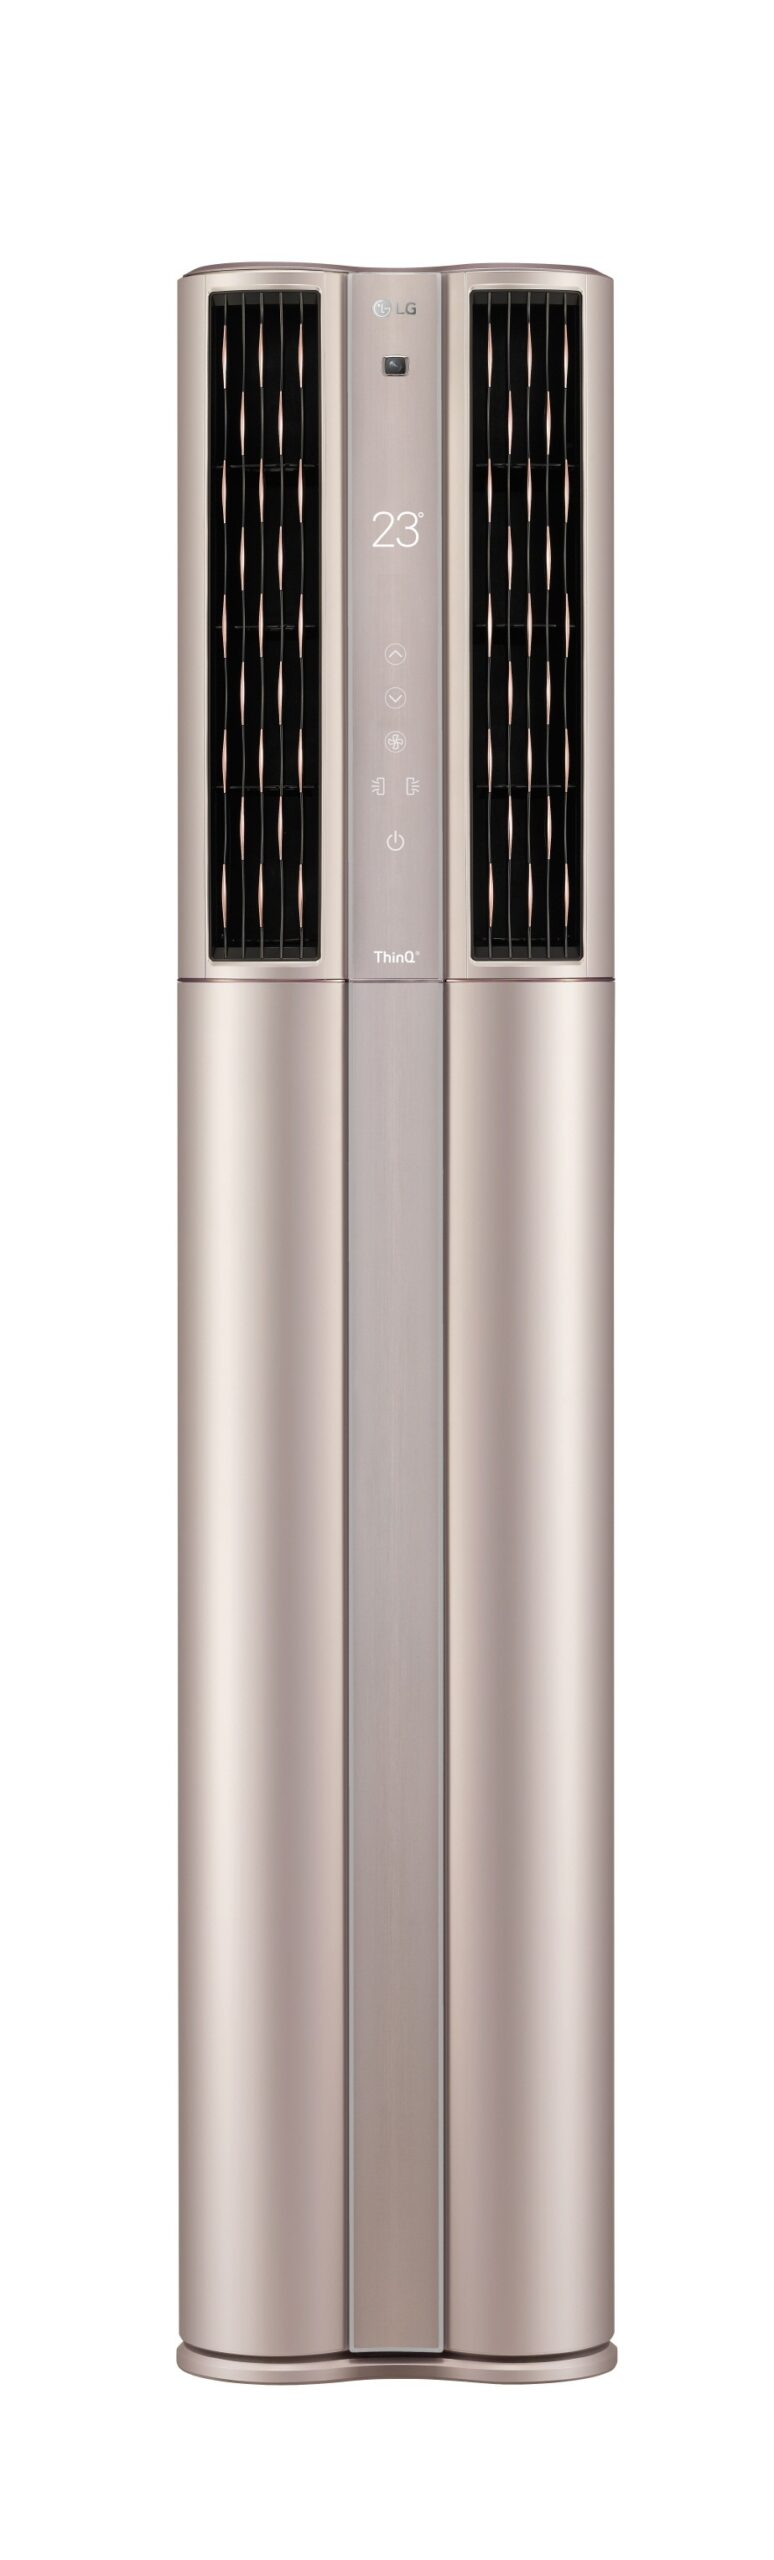 Front view of LG DUALCOOL ThinQ™ Stand Inverter air conditioner with vents open